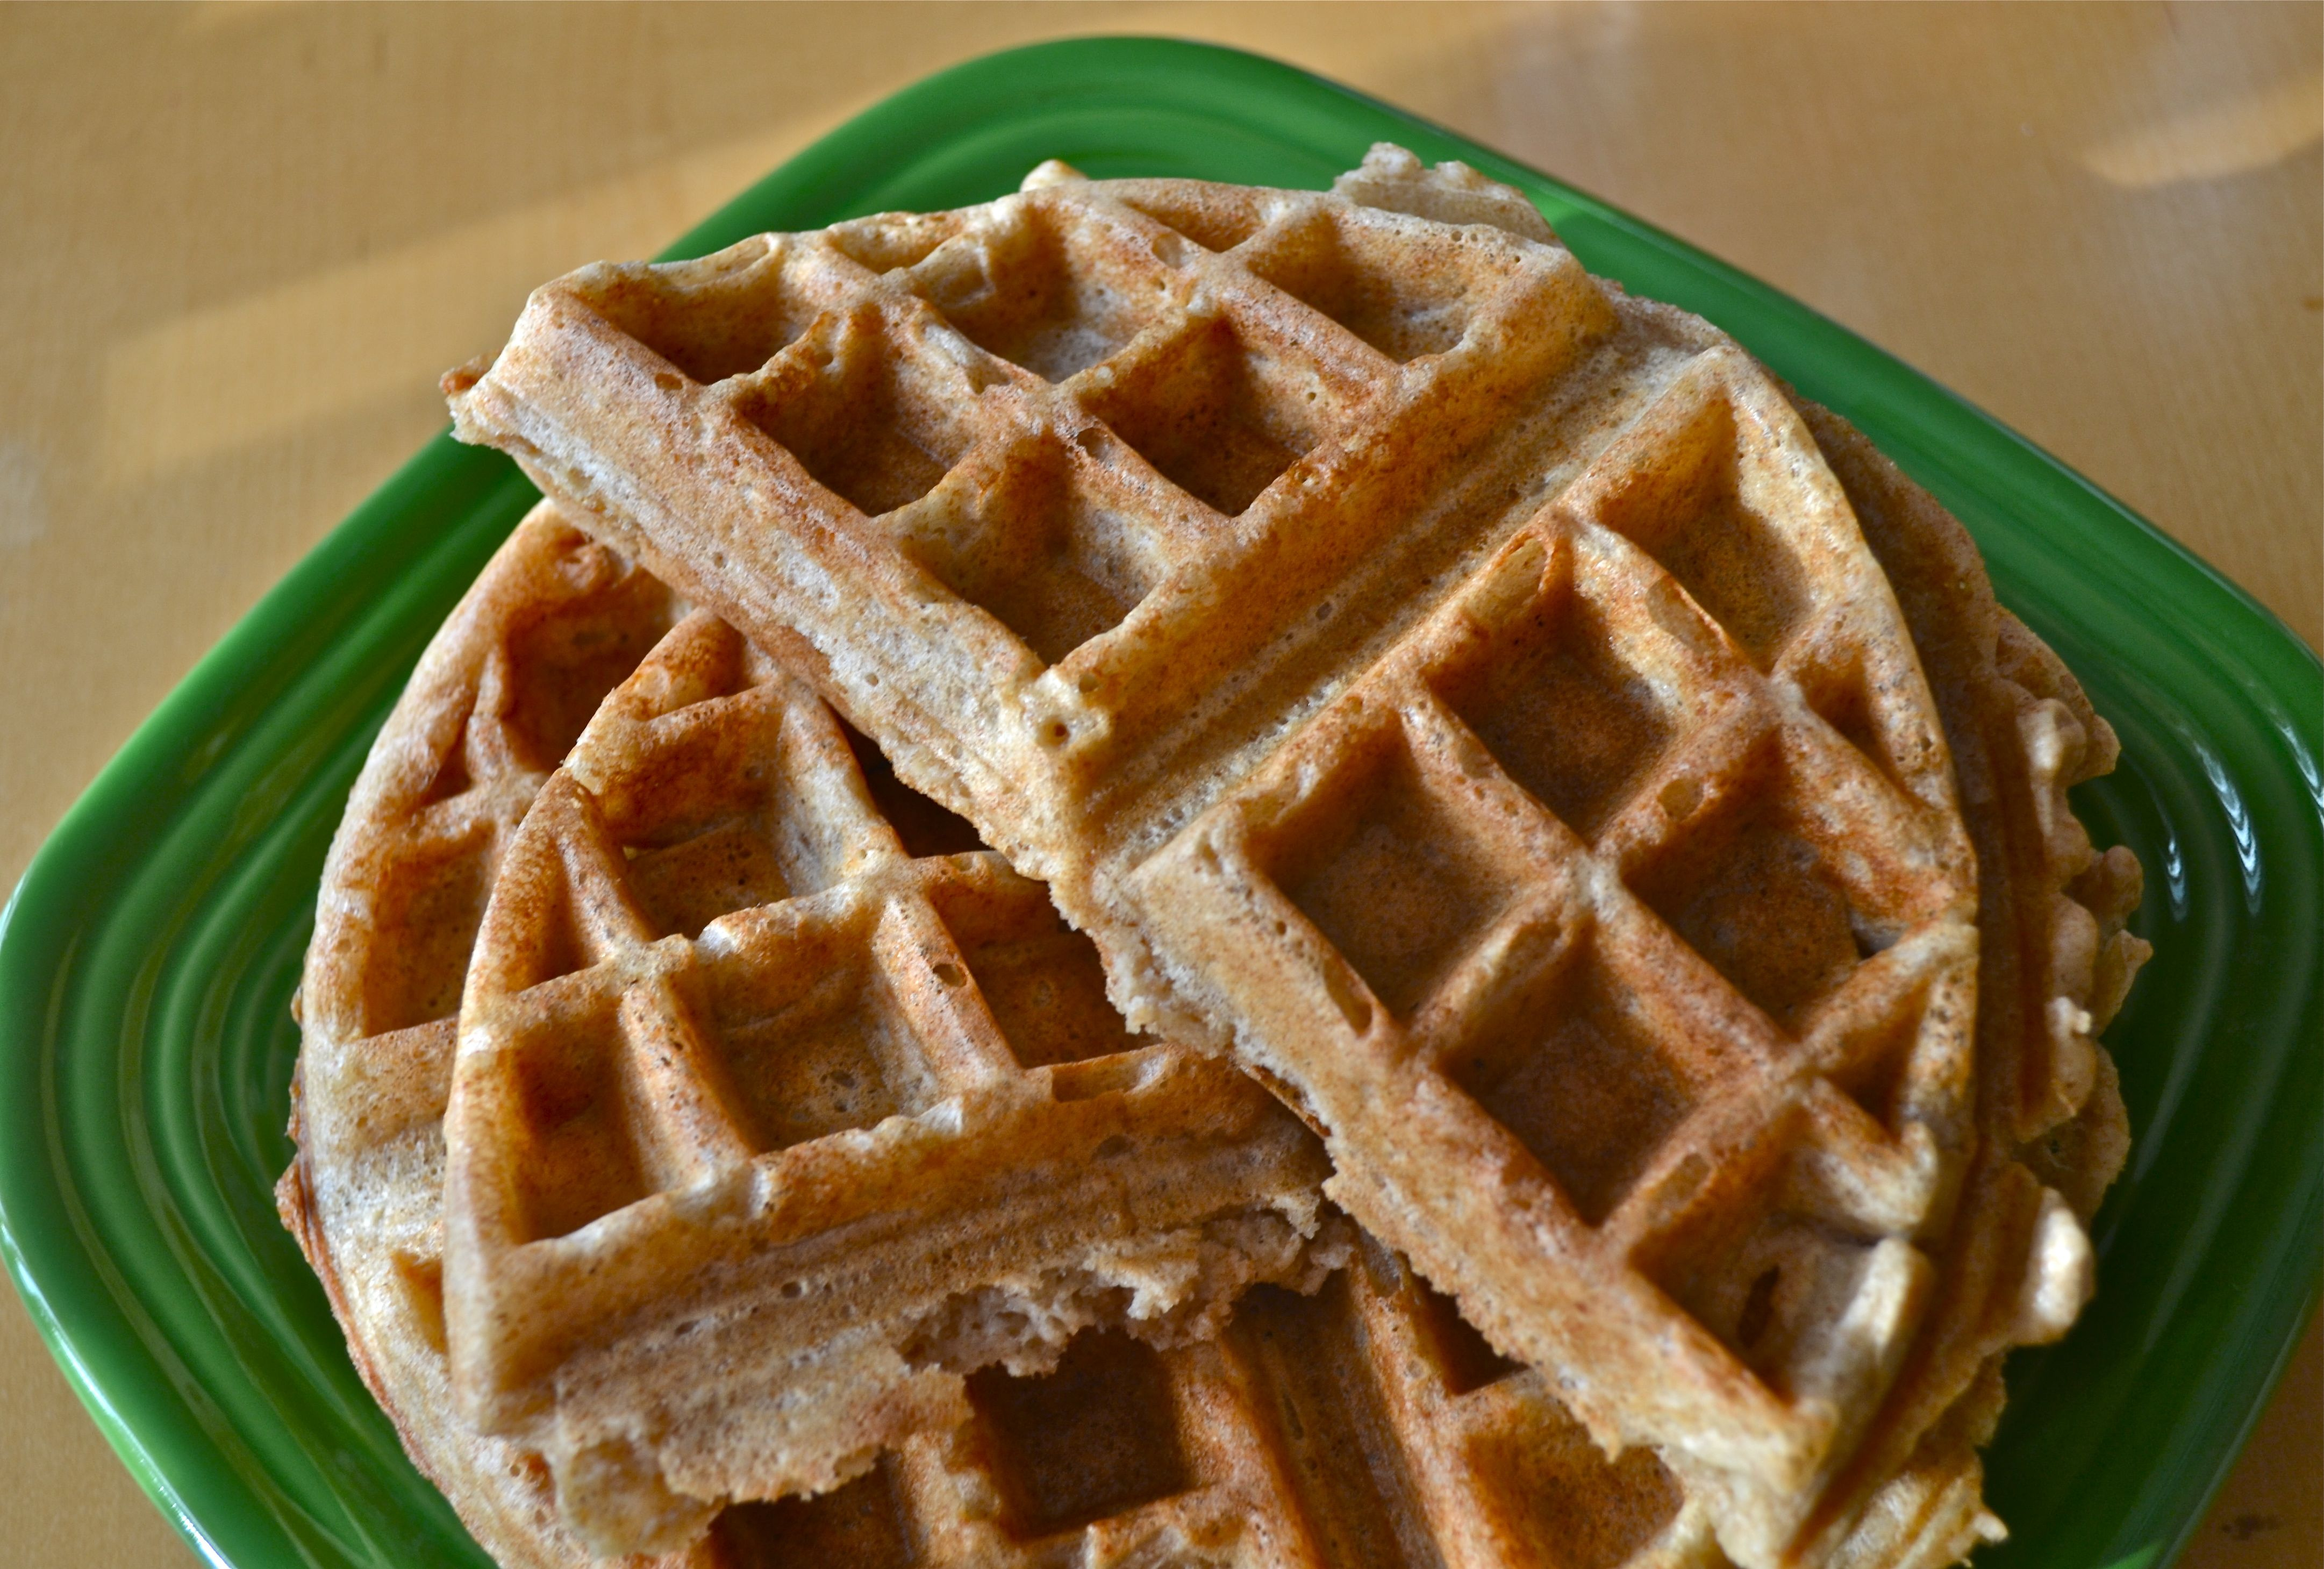 ... Whole Grain Waffles - Badger Girl Learns to Cook by Kimberly Aime